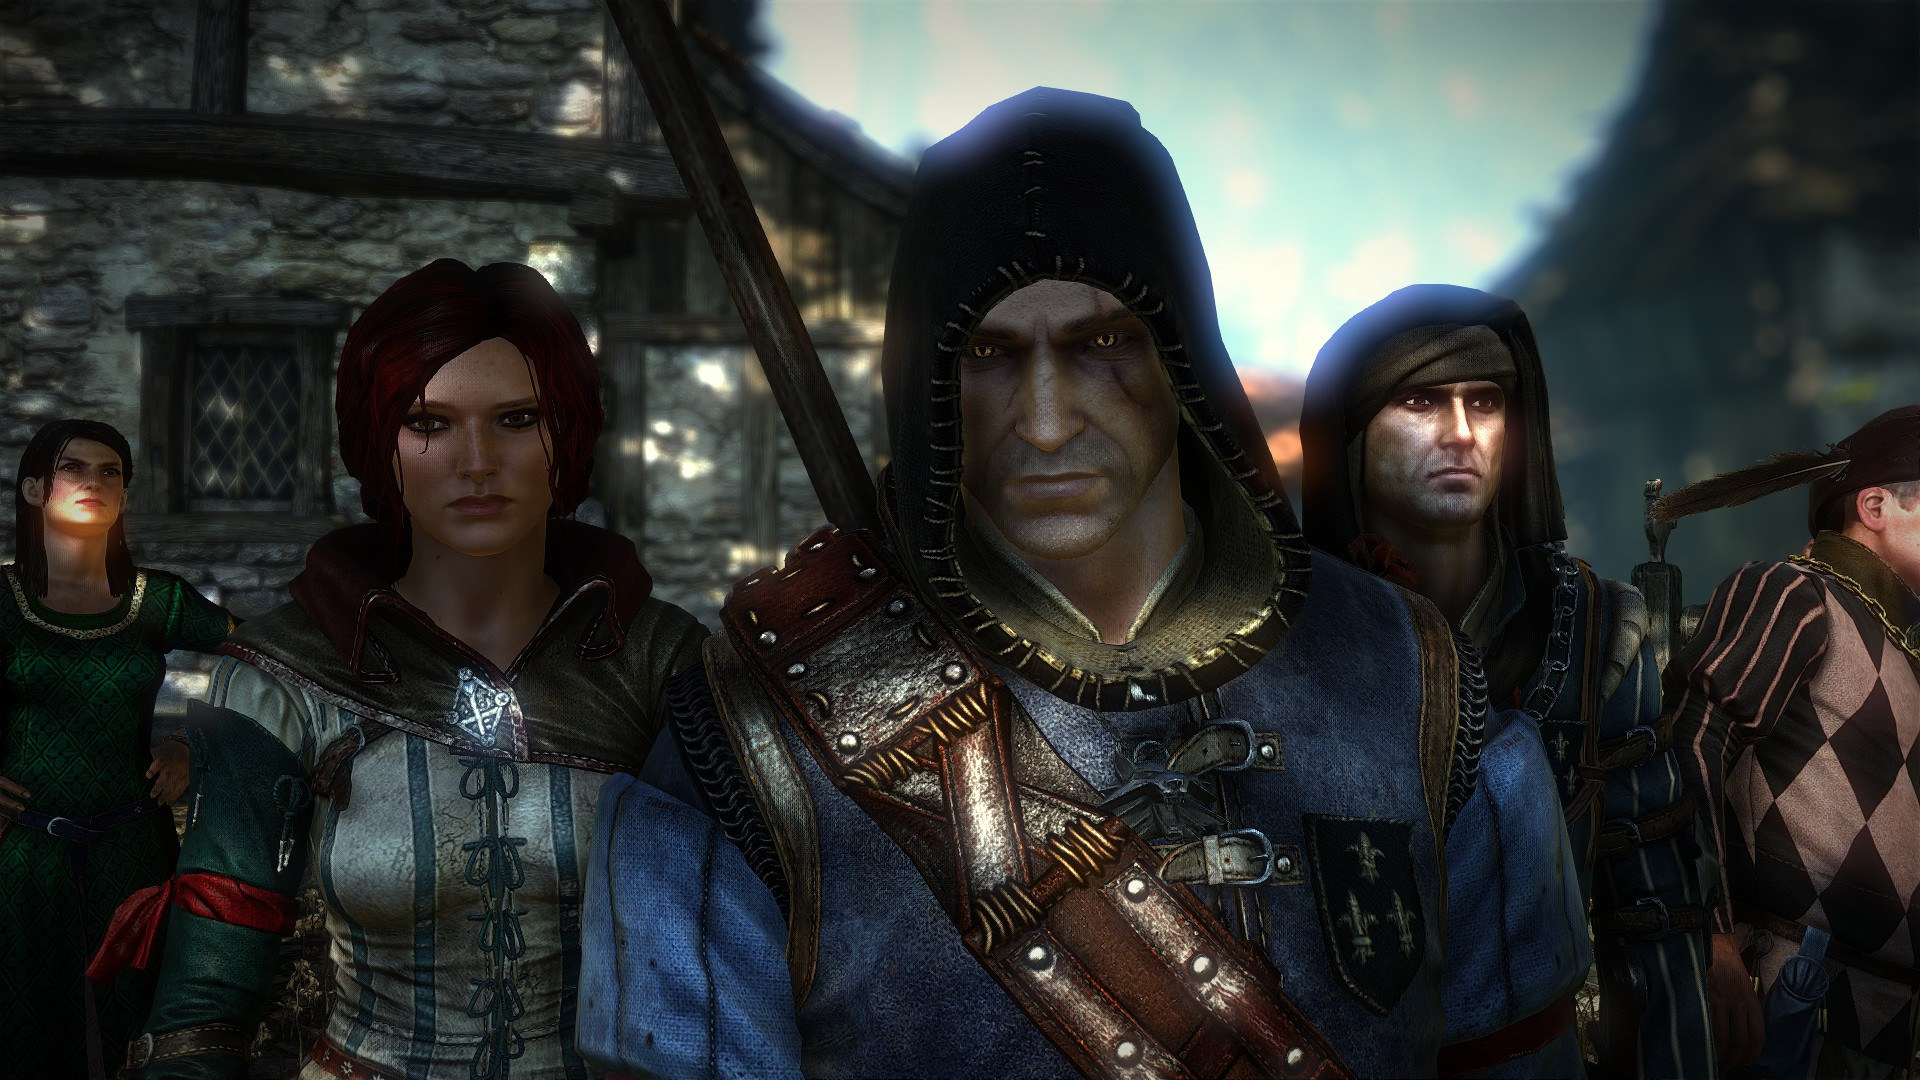 The Witcher 2 heading to Mac App Store